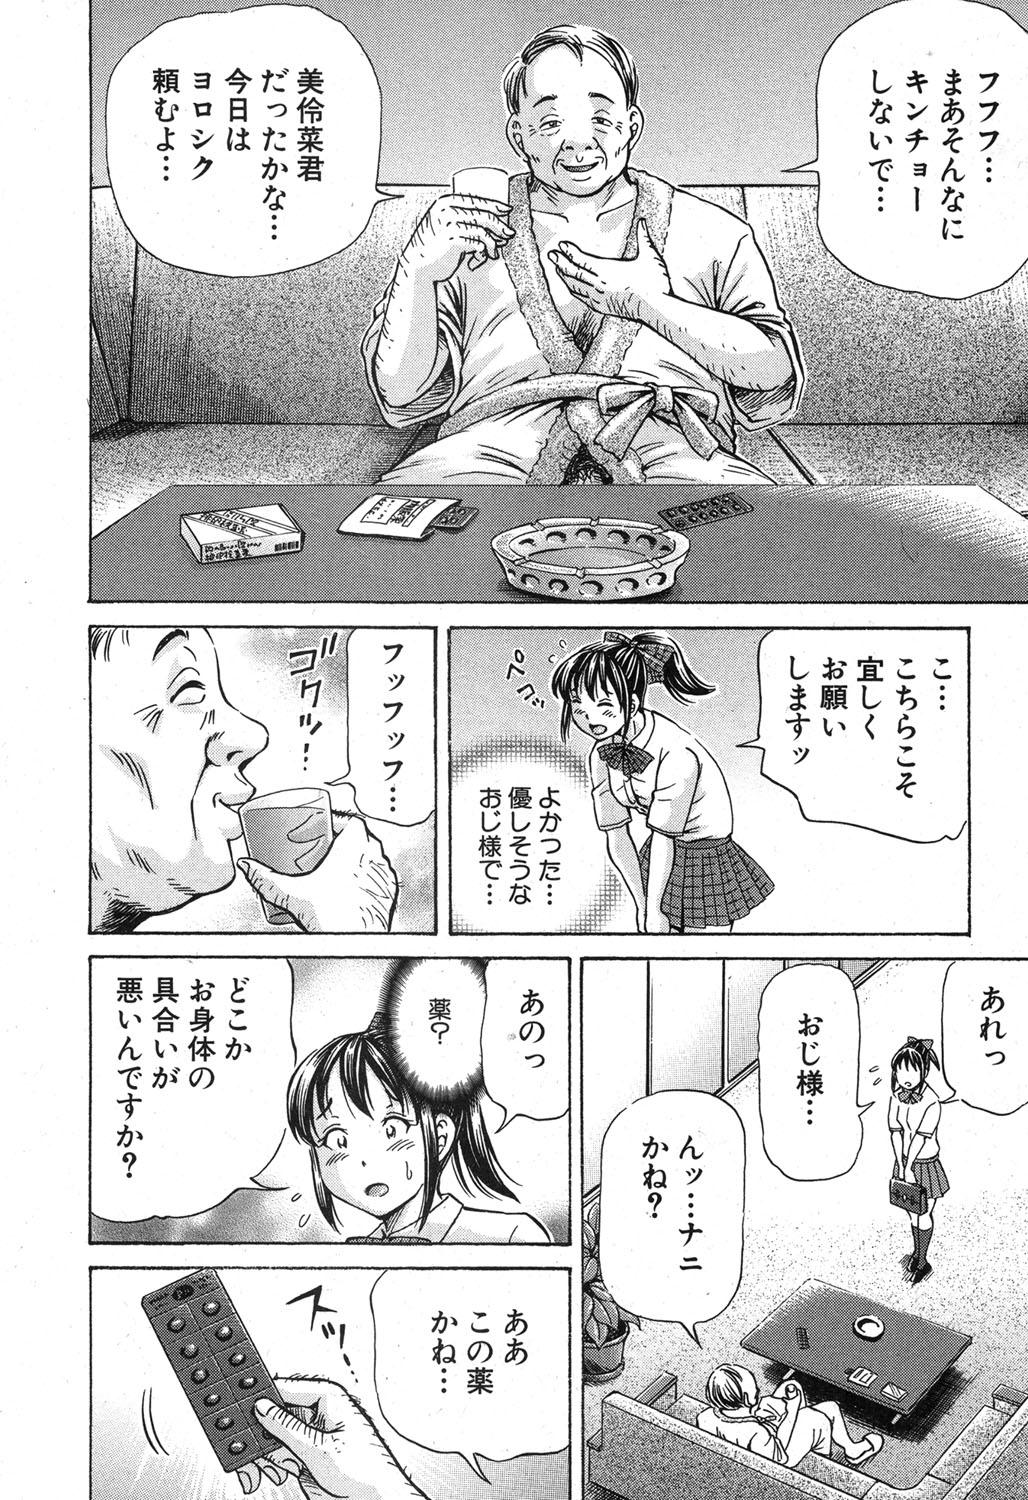 BUSTER COMIC 2015-11 166